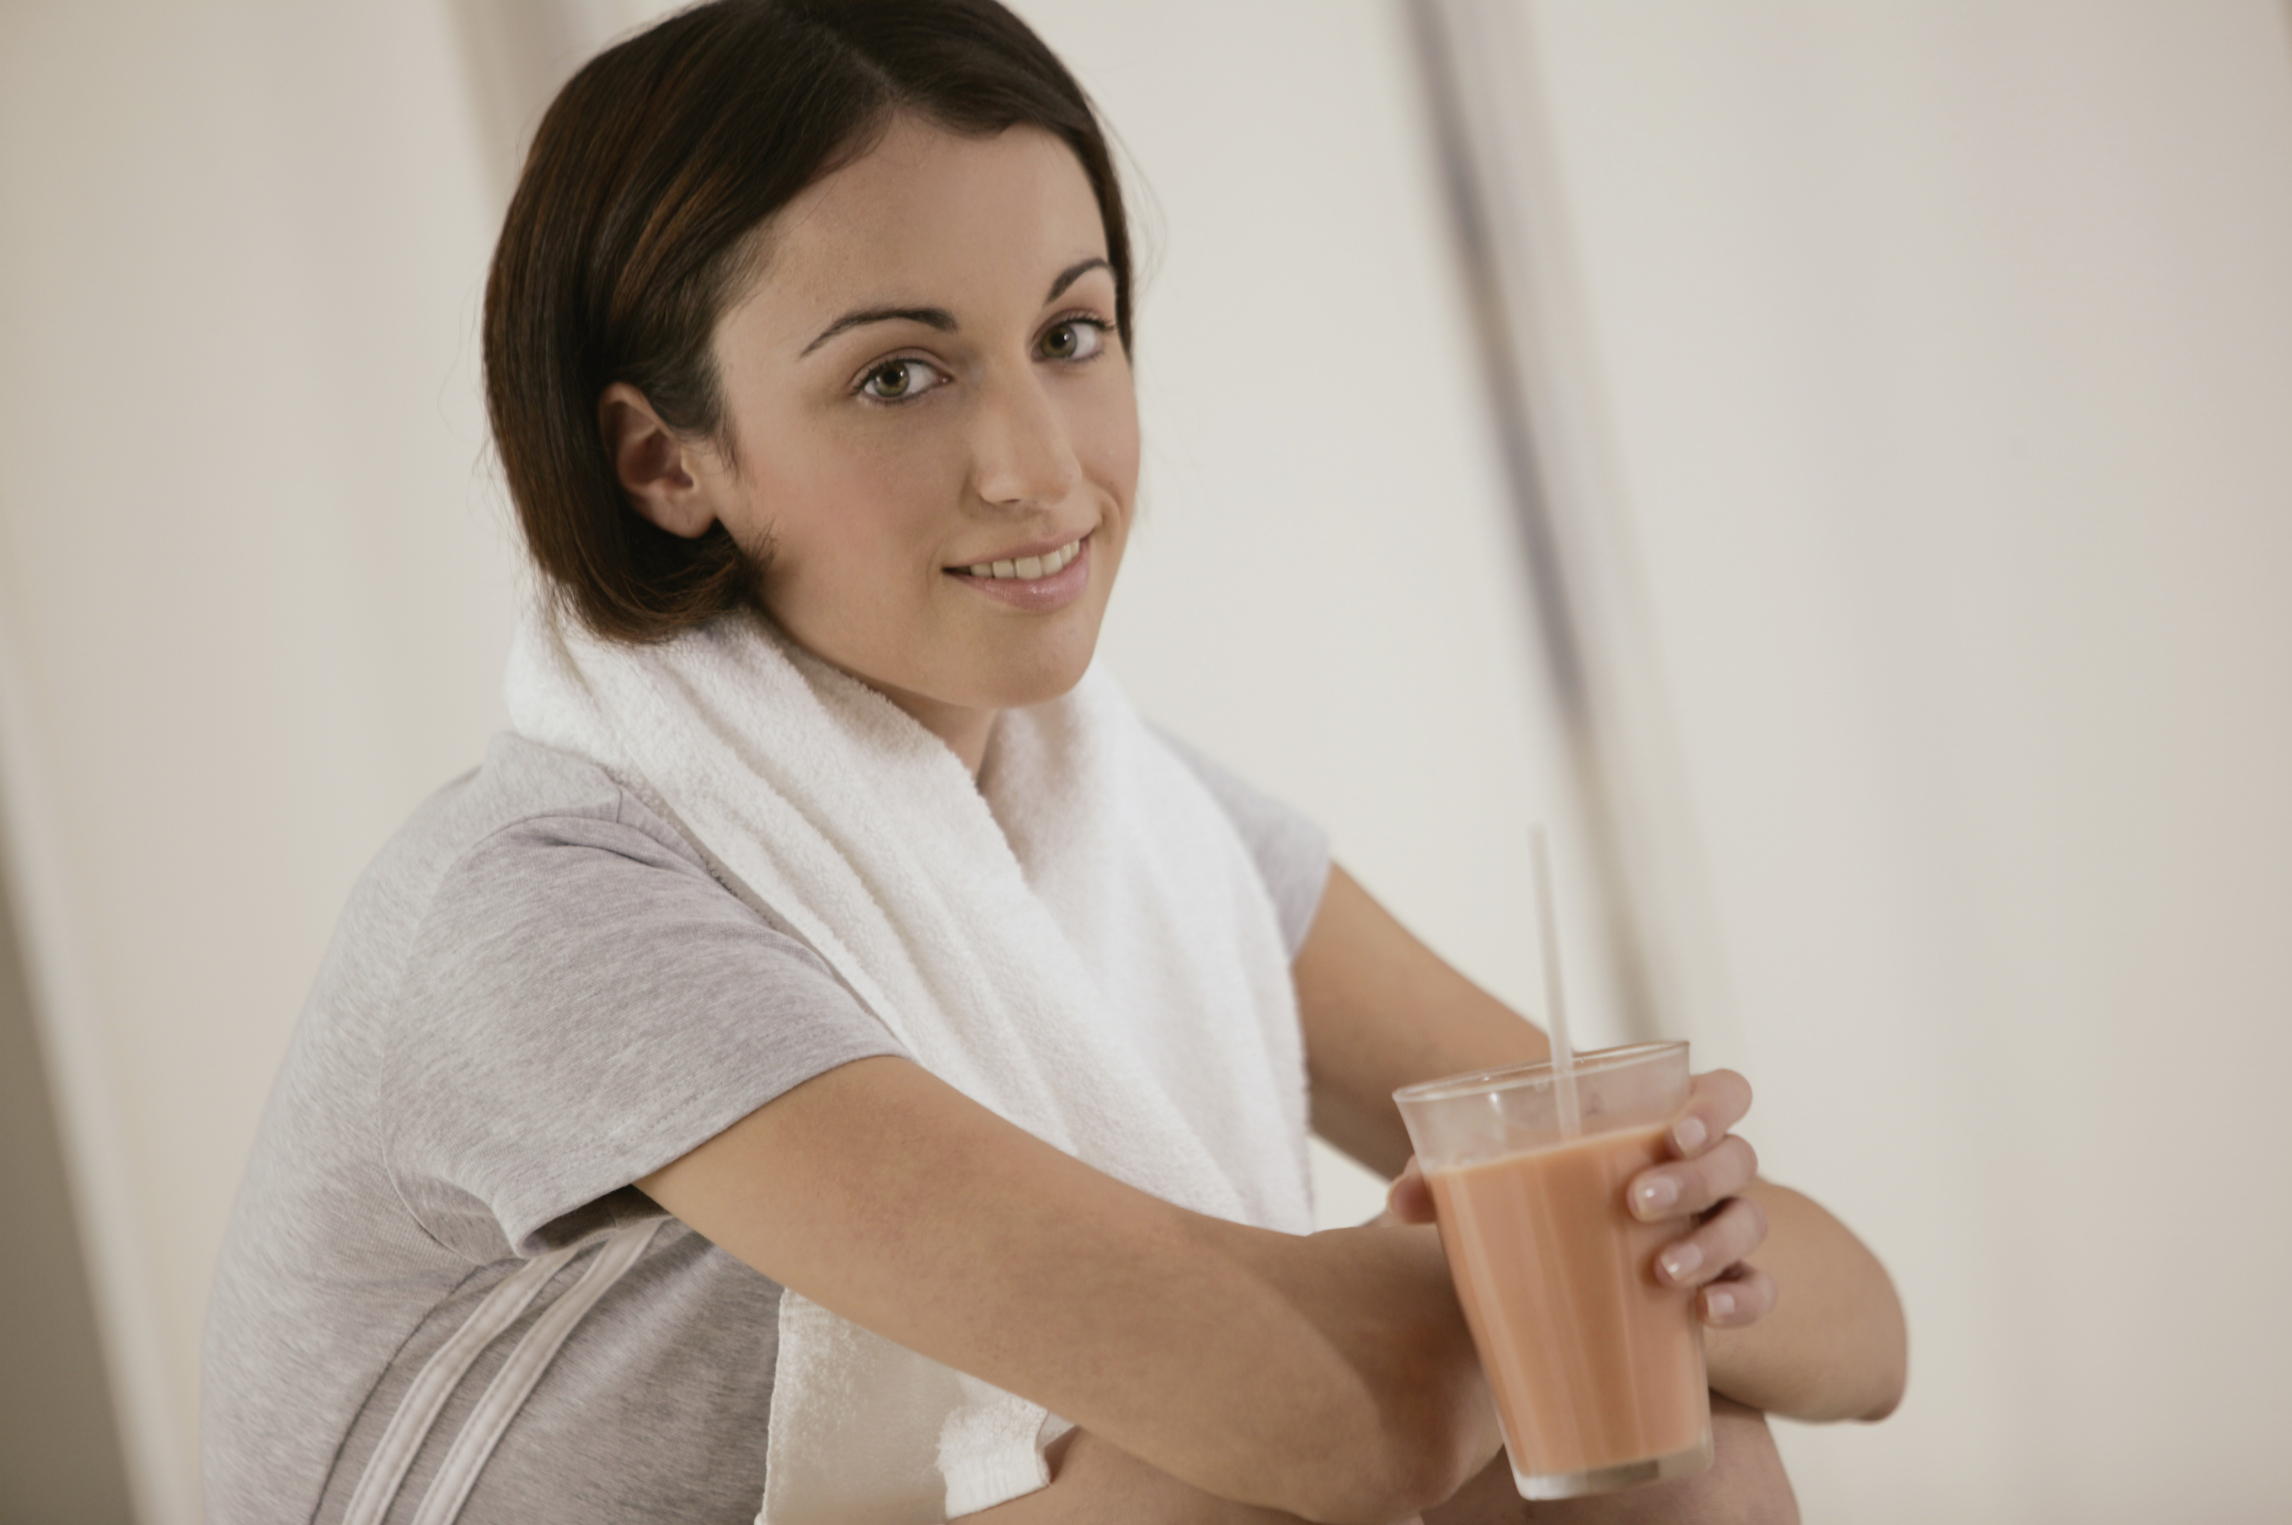 Make your protein drink with whey protein isolate for less lactose.